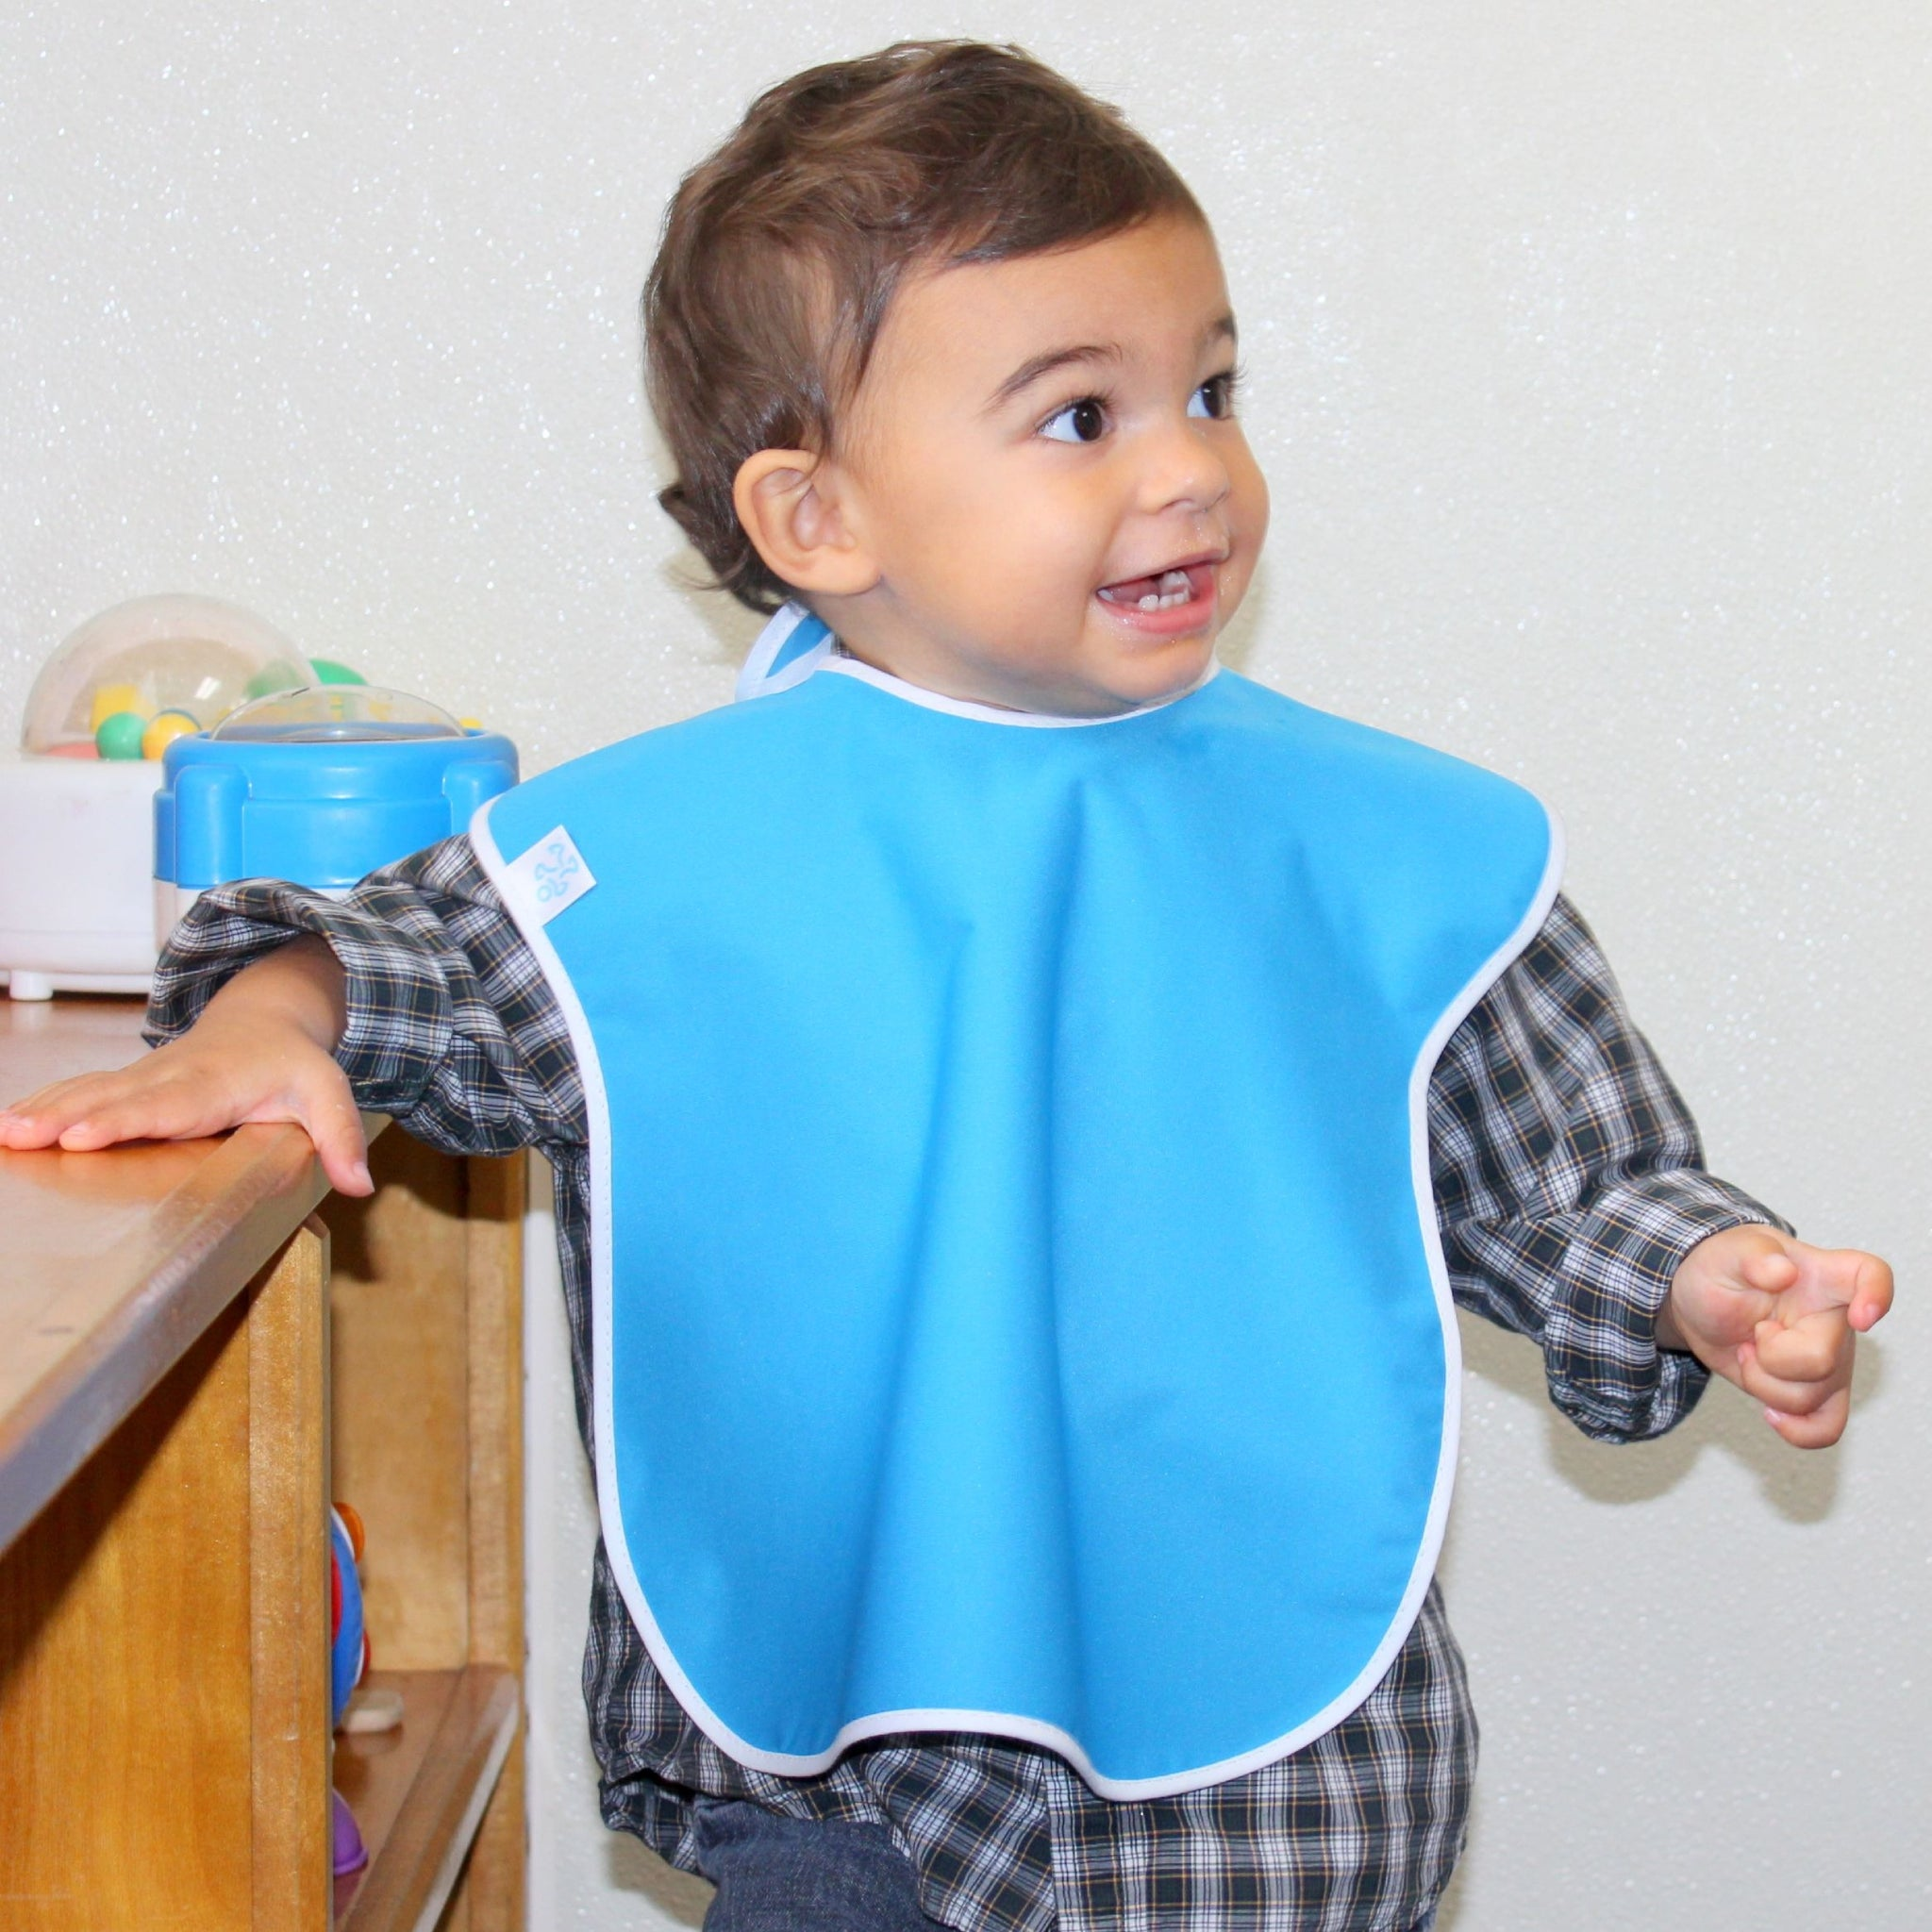 687bb3025096a Wholesale Waterproof Bibs in Bulk for Baby and Toddler